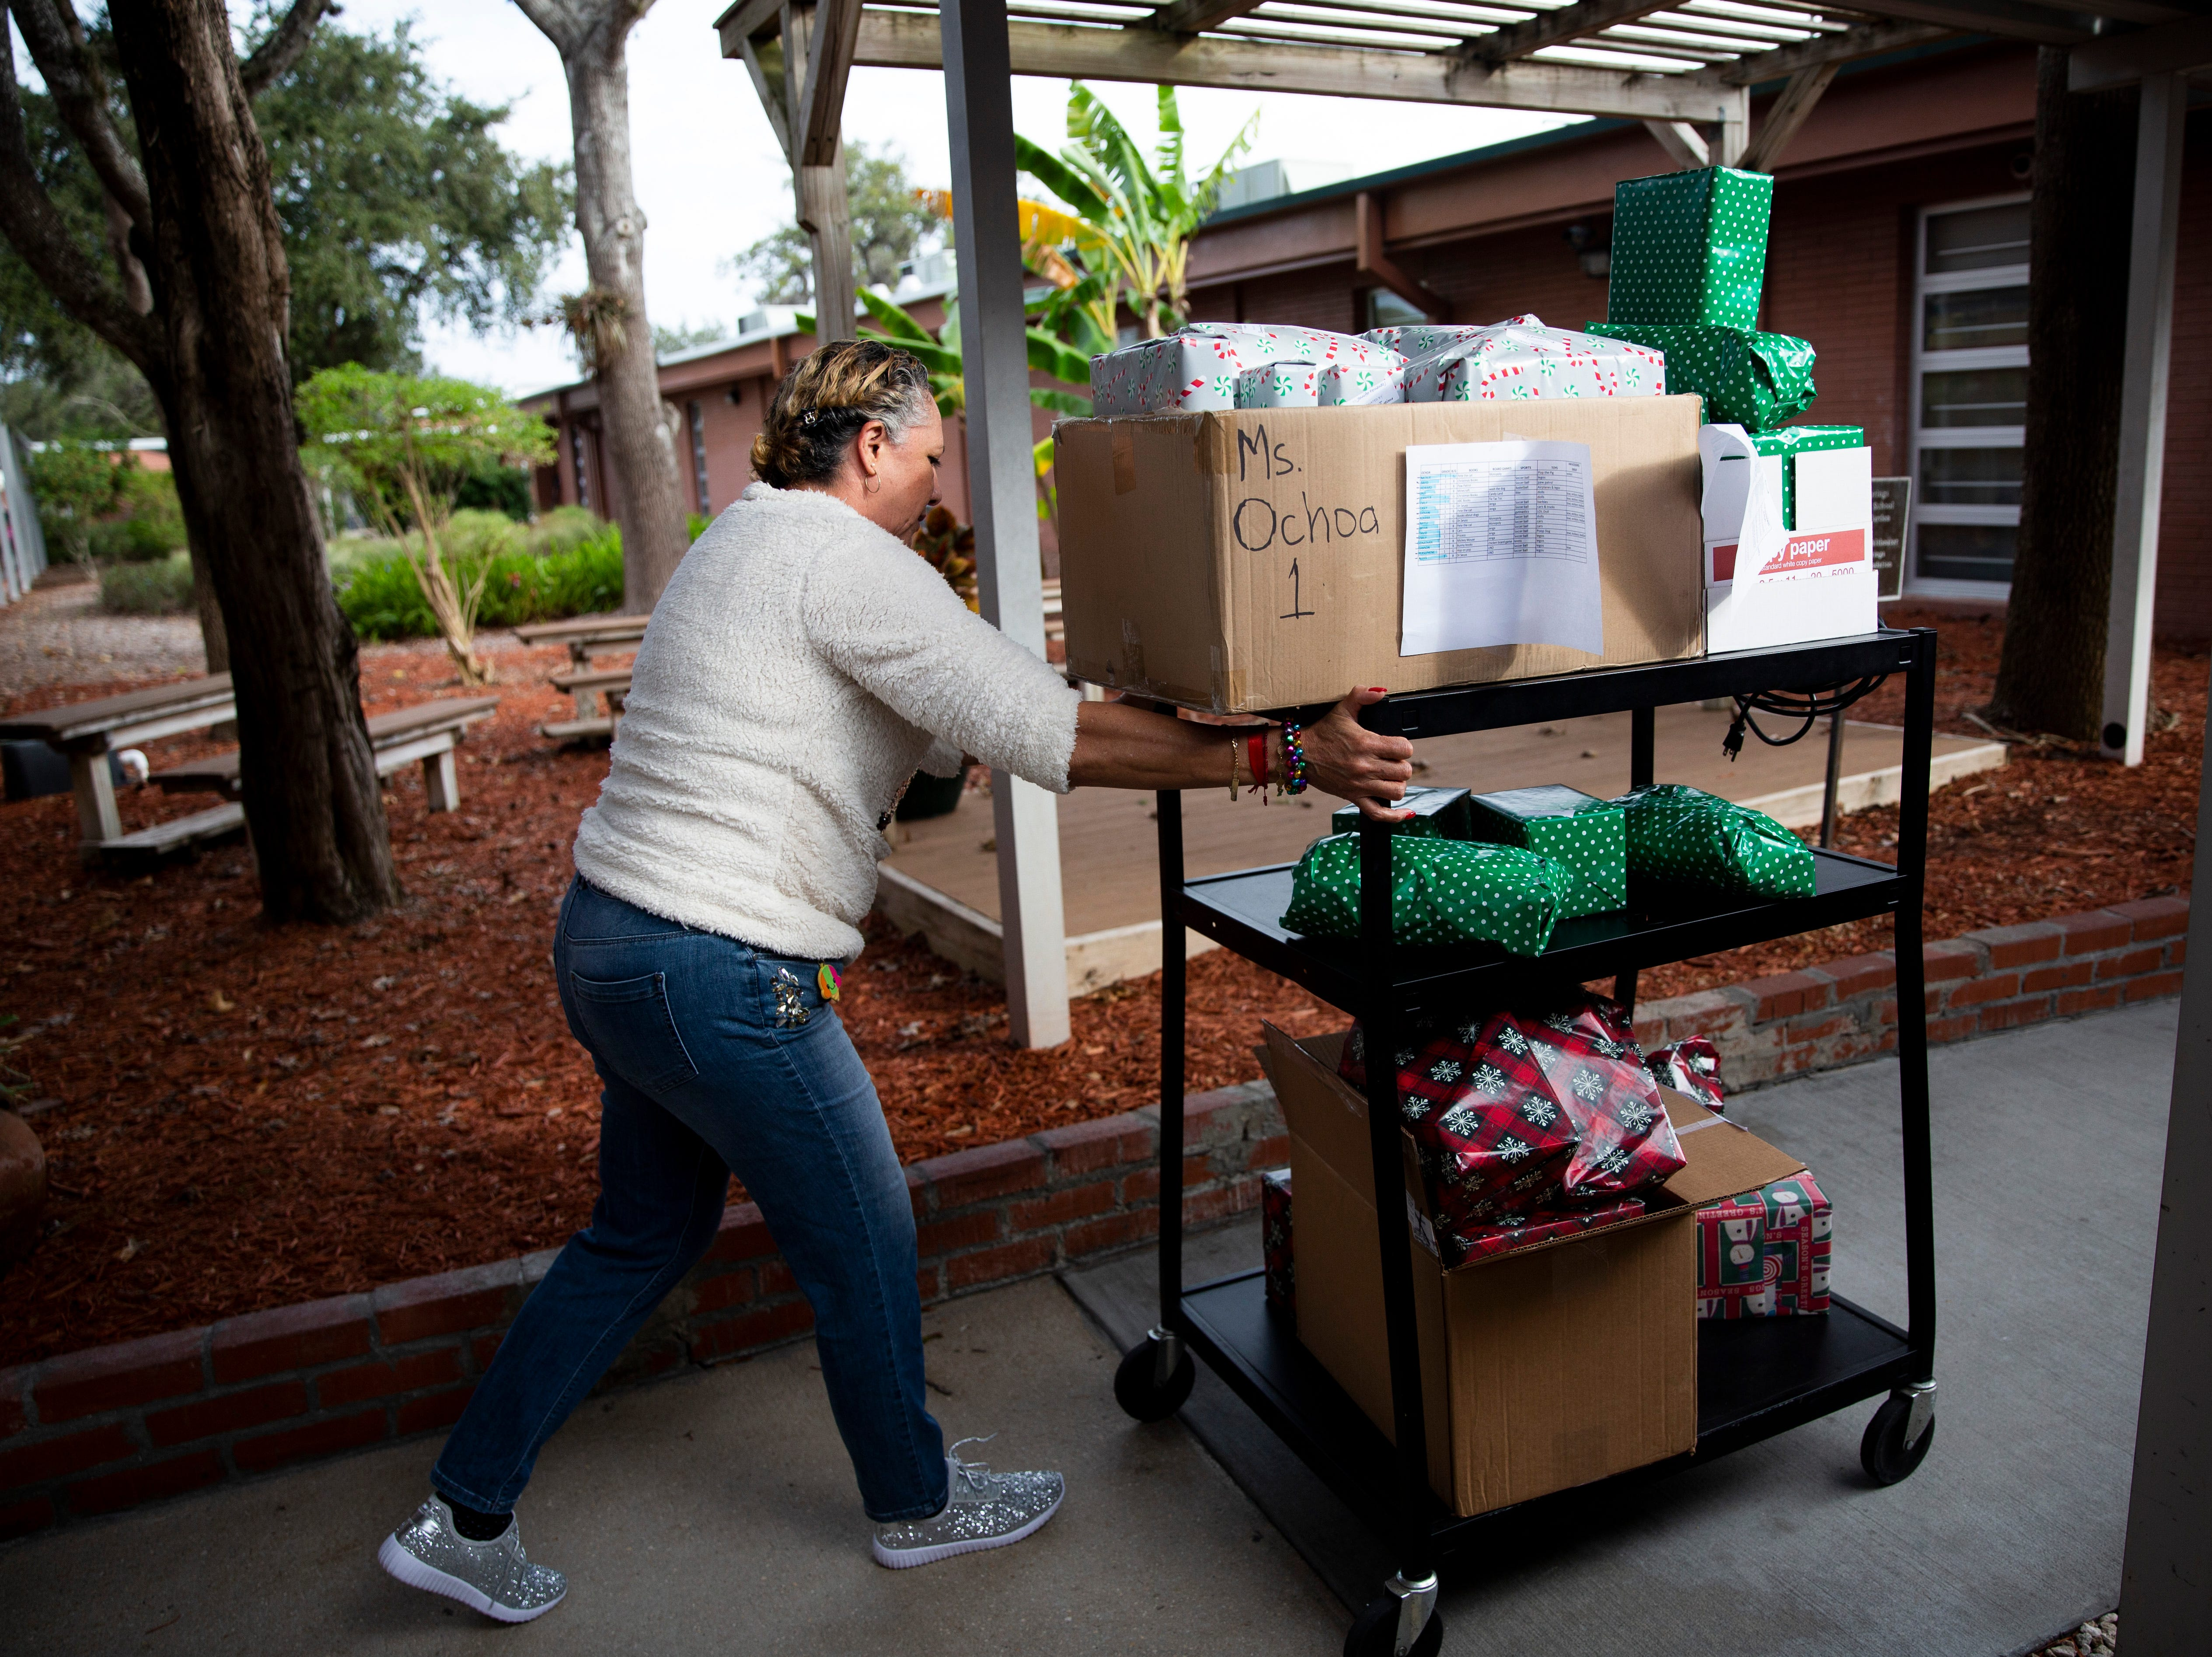 Marta Romero pushes a cart full of toys donated by Empowered Latinos on Thursday, December 20, 2018, at Bonita Springs Elementary School in Bonita Springs.